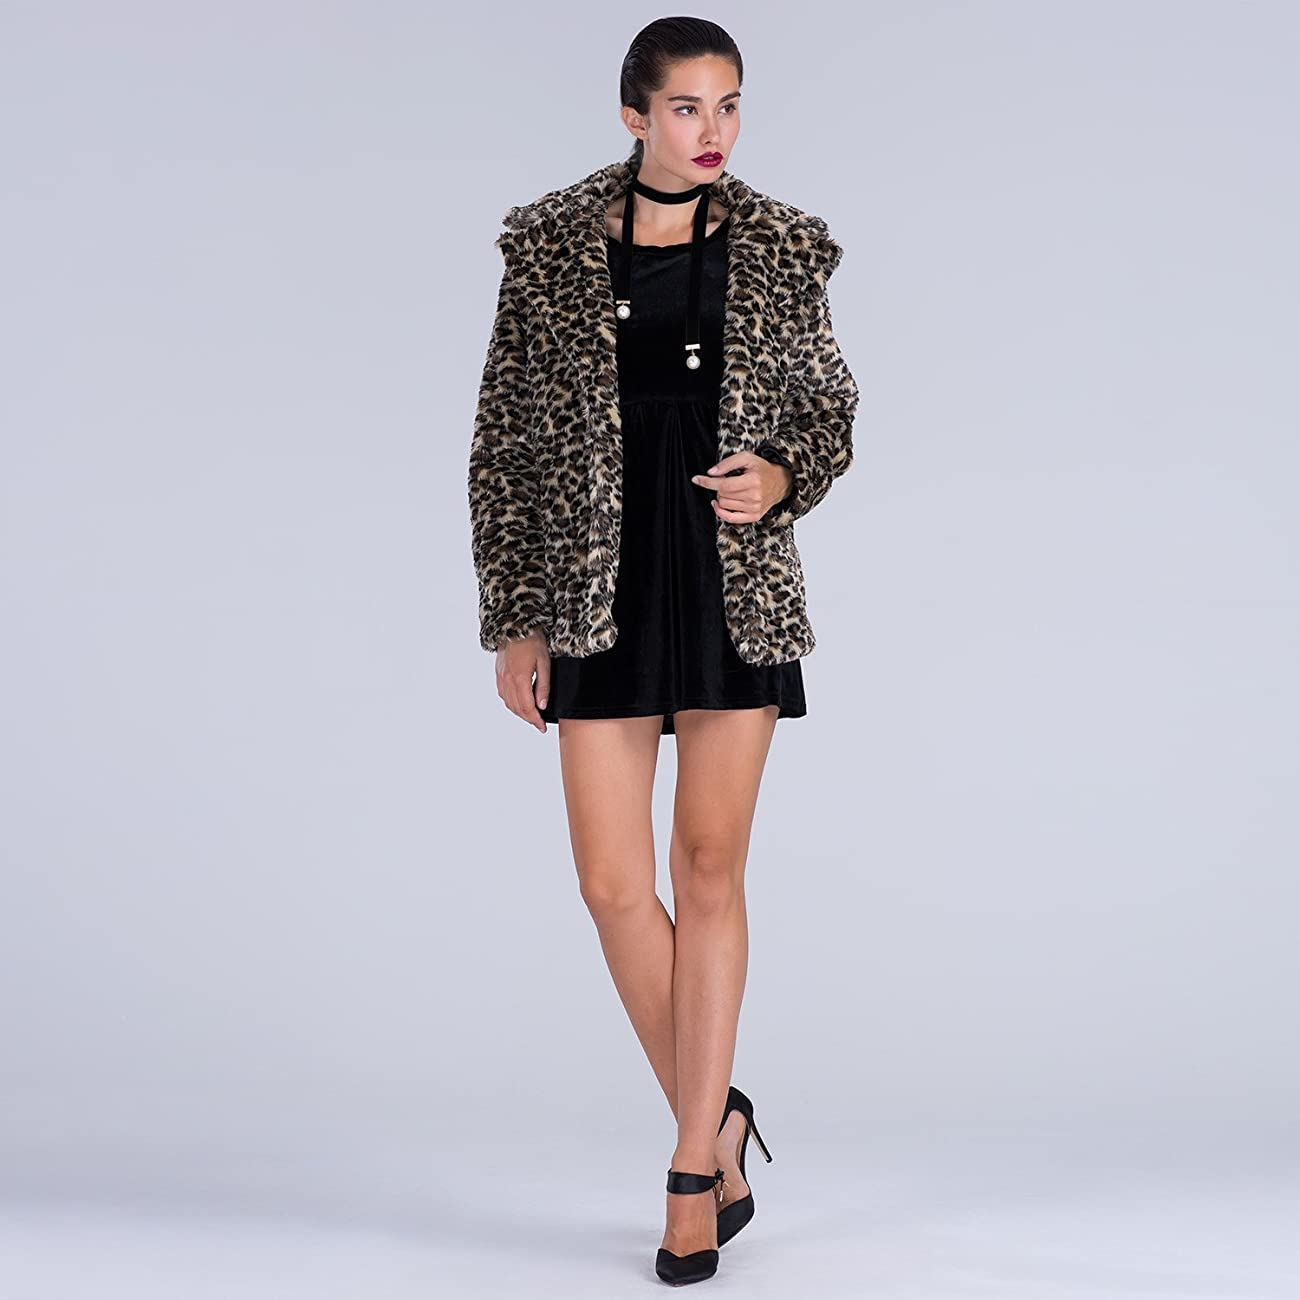 Choies Women Elegant Vintage Leopard Print Lapel Faux Fur Coat Fall Winter Outwear 3